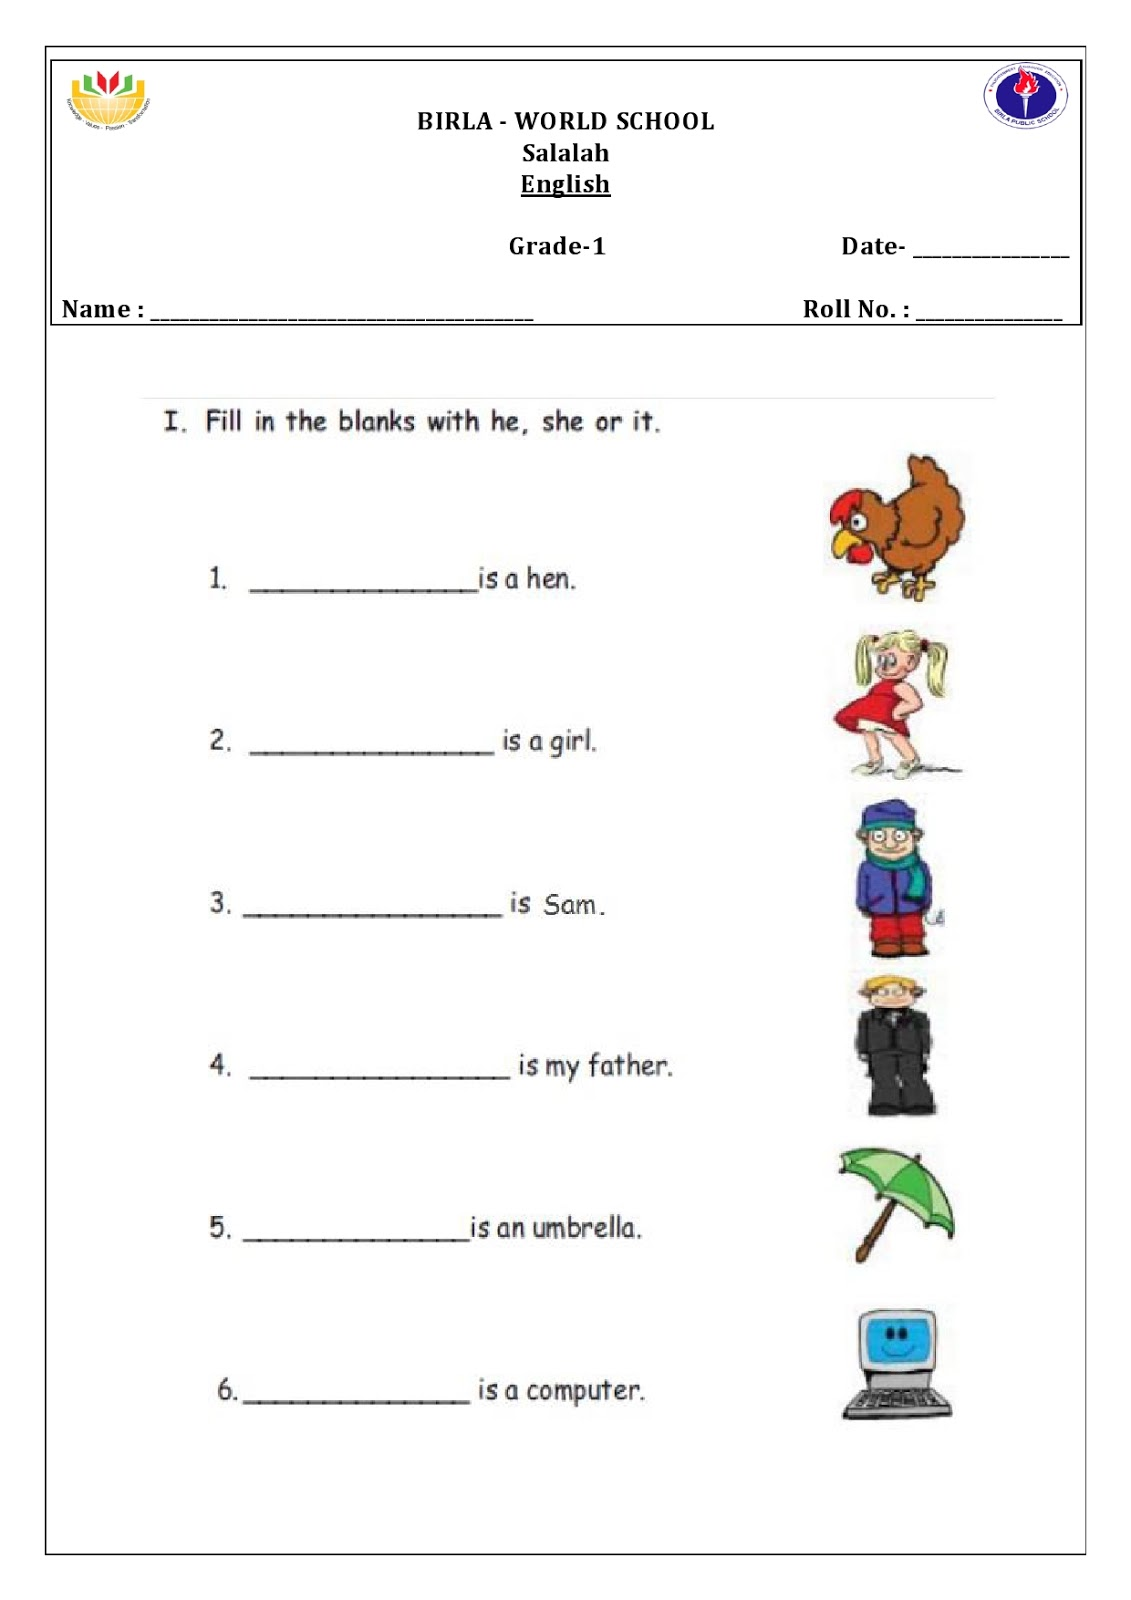 Worksheets For Grade 1 Cbse